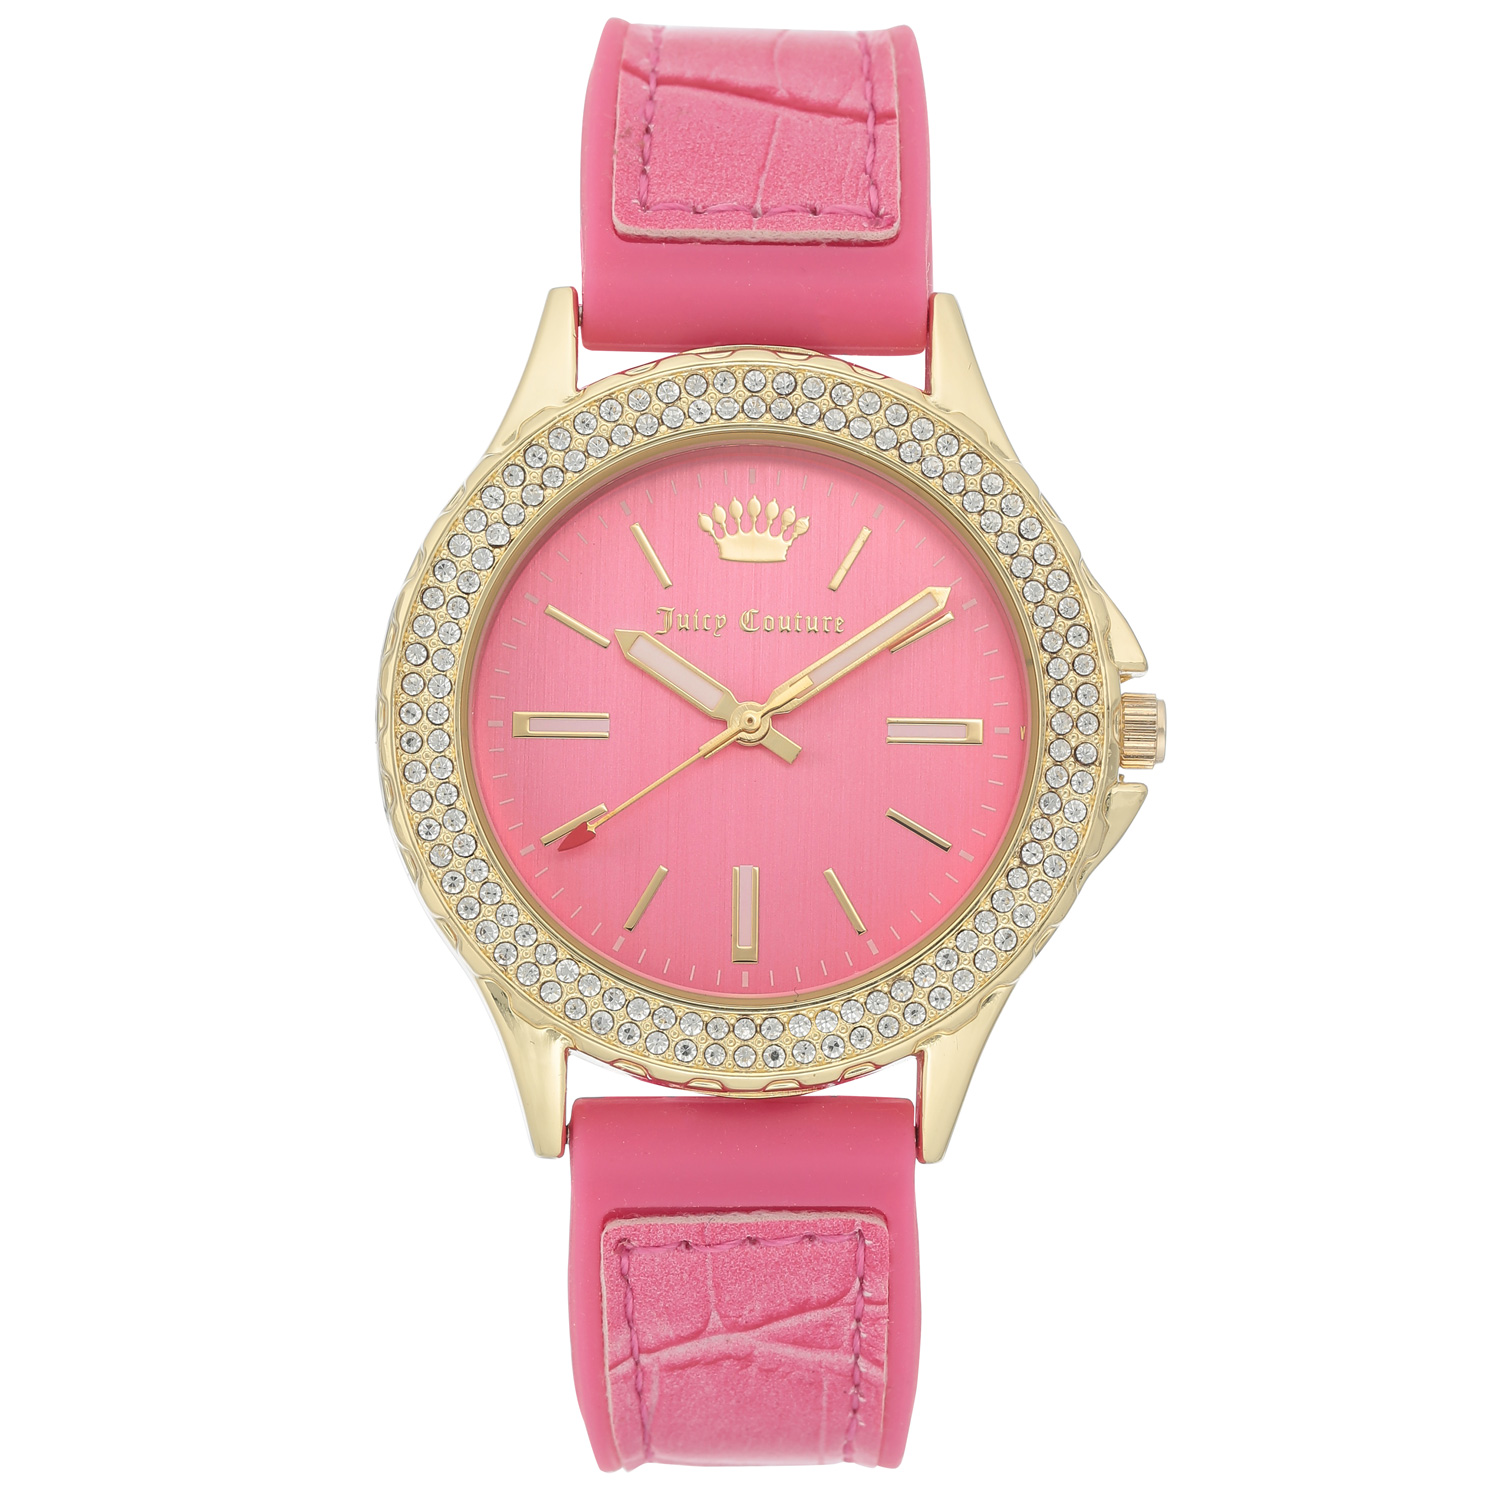 Juicy Couture Watch JC/1112HPHP Pink